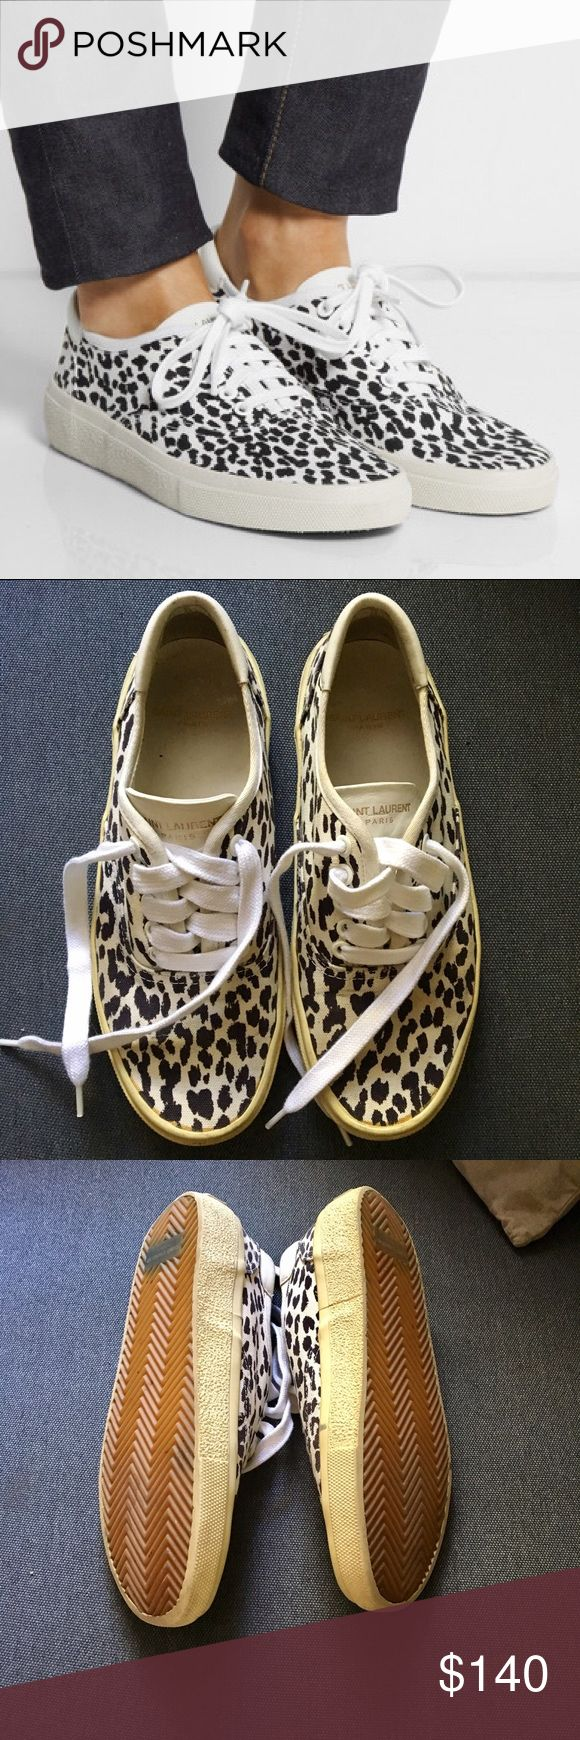 """Saint Laurent Leopard Print Canvas Sneakers Saint Laurent Leopard Print Canvas Sneakers. Sole approx 1"""". Crafted from canvas with a leather tongue and a gold Saint Laurent stamp. Minimal wear on soles, but shoes themselves have lots of wear. Yellow glue marks along soles, minors scuffs here and there, one scrape on the leather trim. All pictured. Still adorable and priced accordingly! First pic is stock.   On here to declutter, 🚫 trades. If I want something in your closet badly enough, I'll…"""